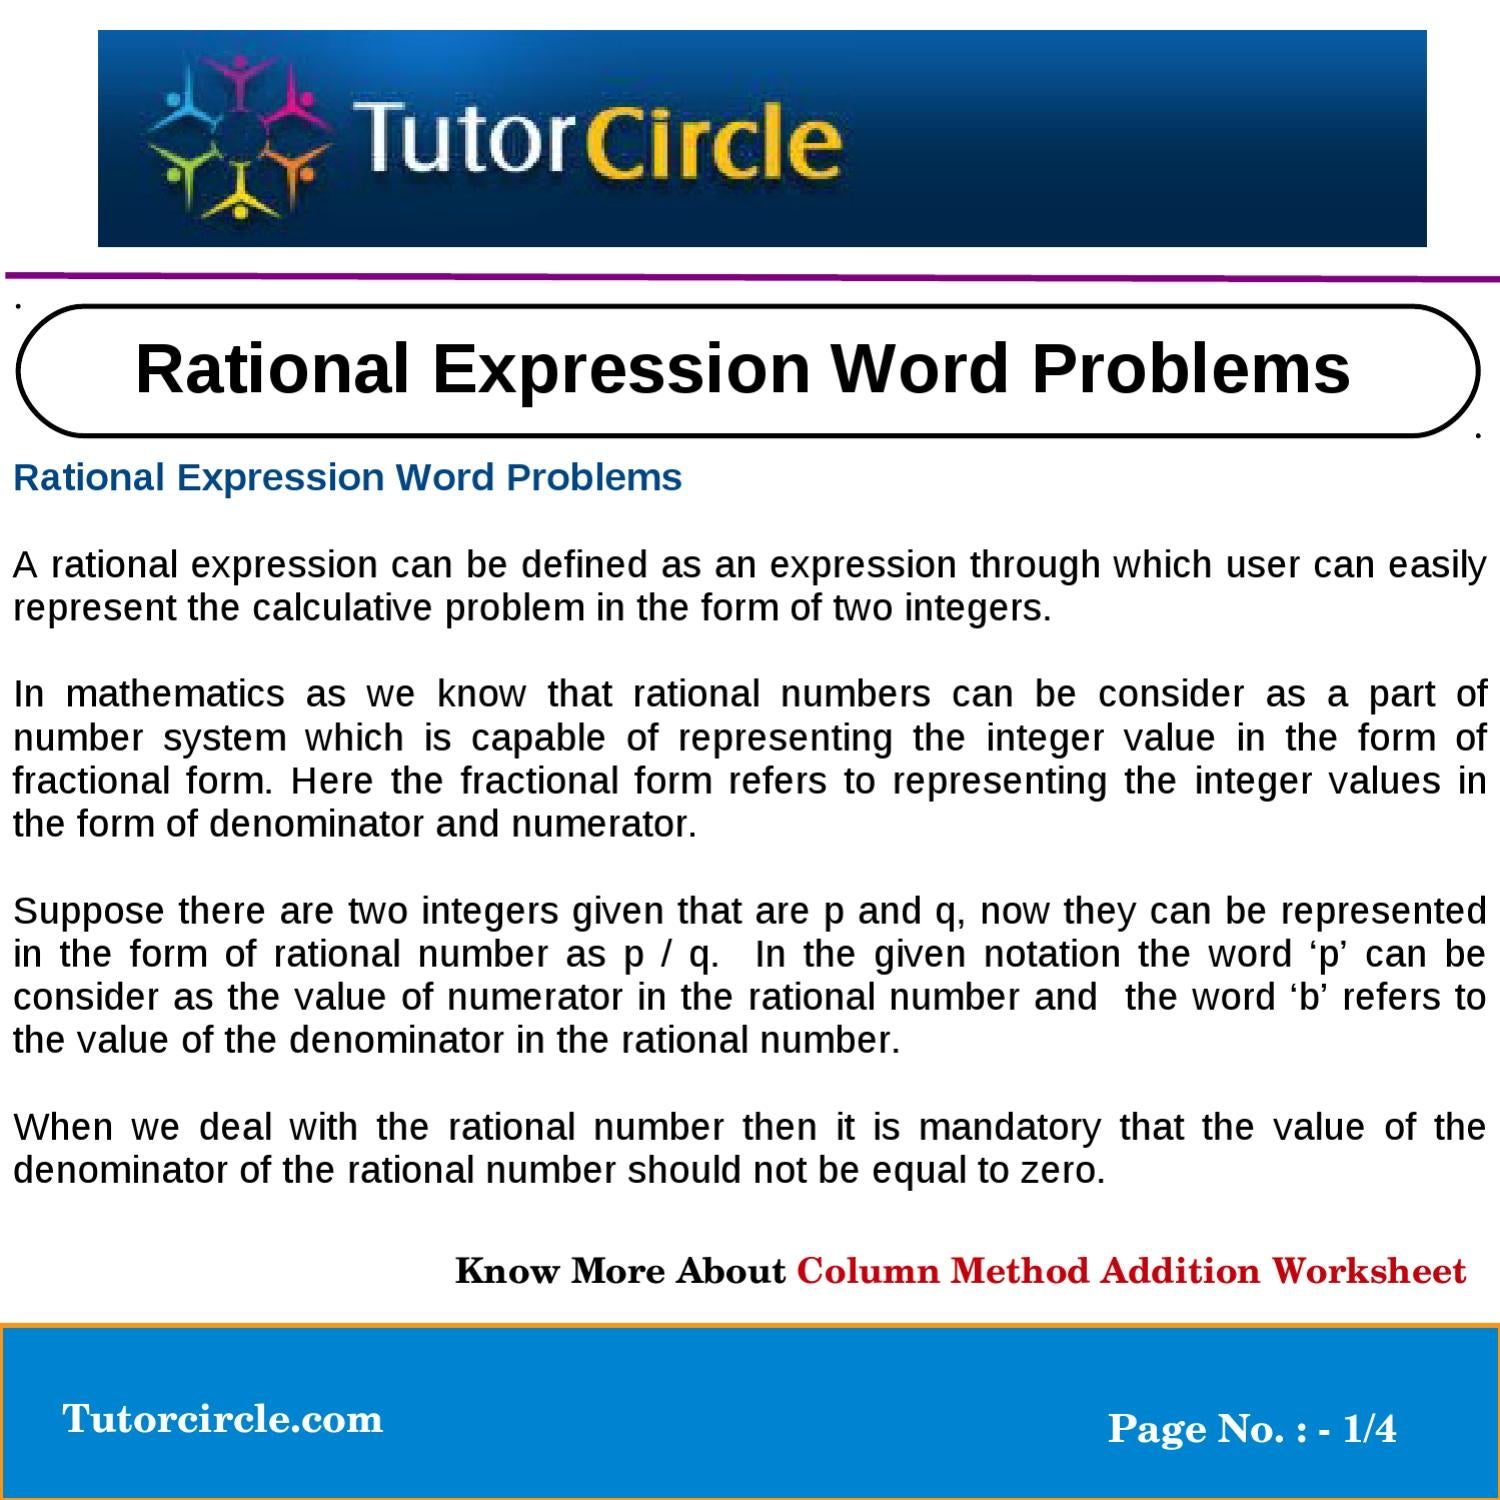 Expression Of Words Written In Ink: Rational Expression Word Problems By Tutorcircle Team